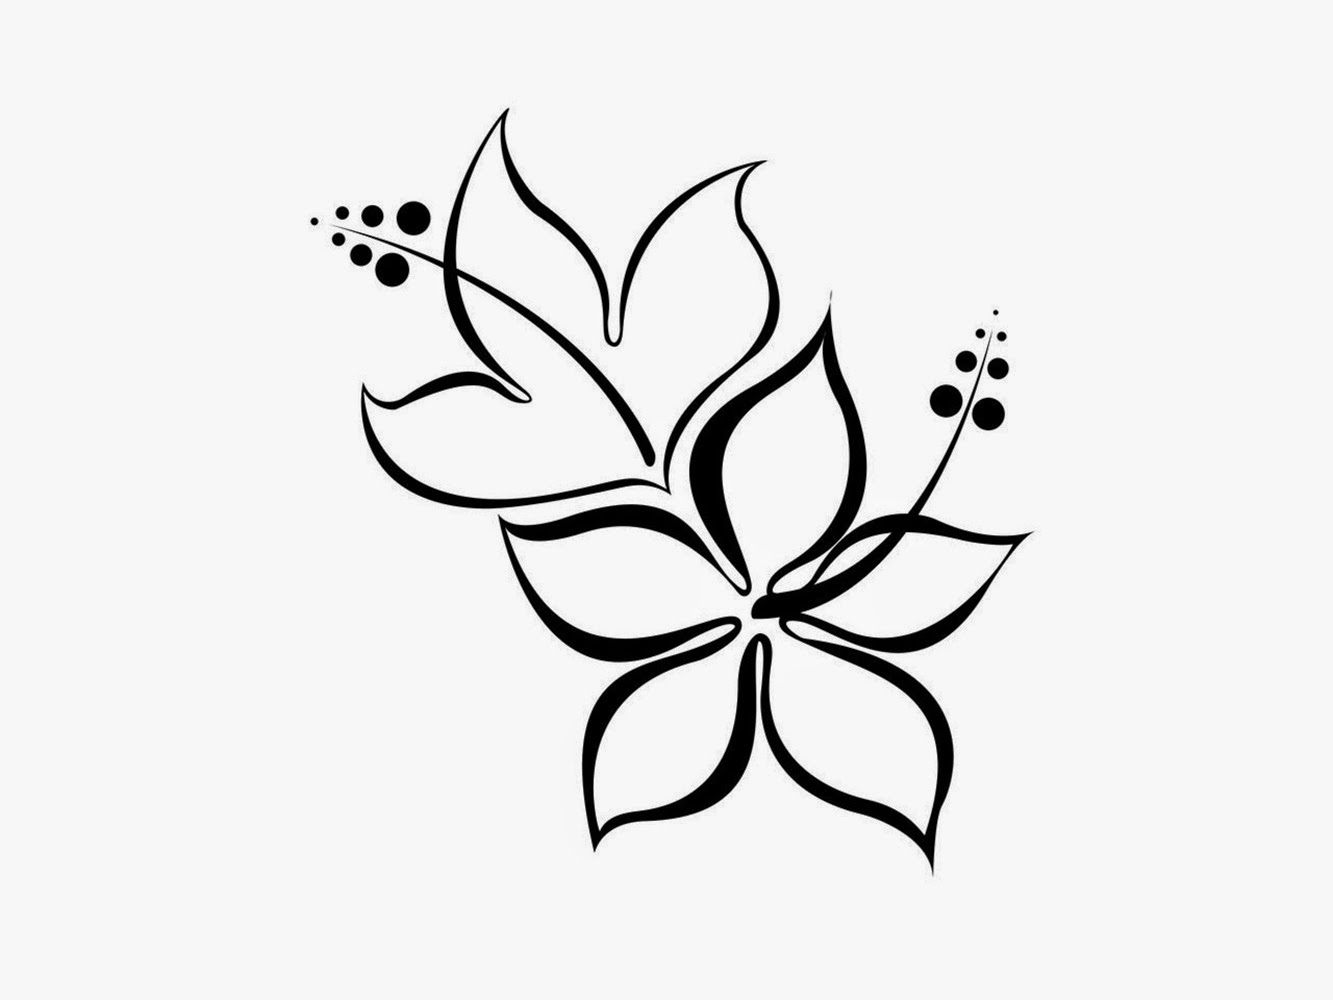 Flower black and white drawing at getdrawings free for 1333x1000 black and white flowers drawings black and white flowers mightylinksfo